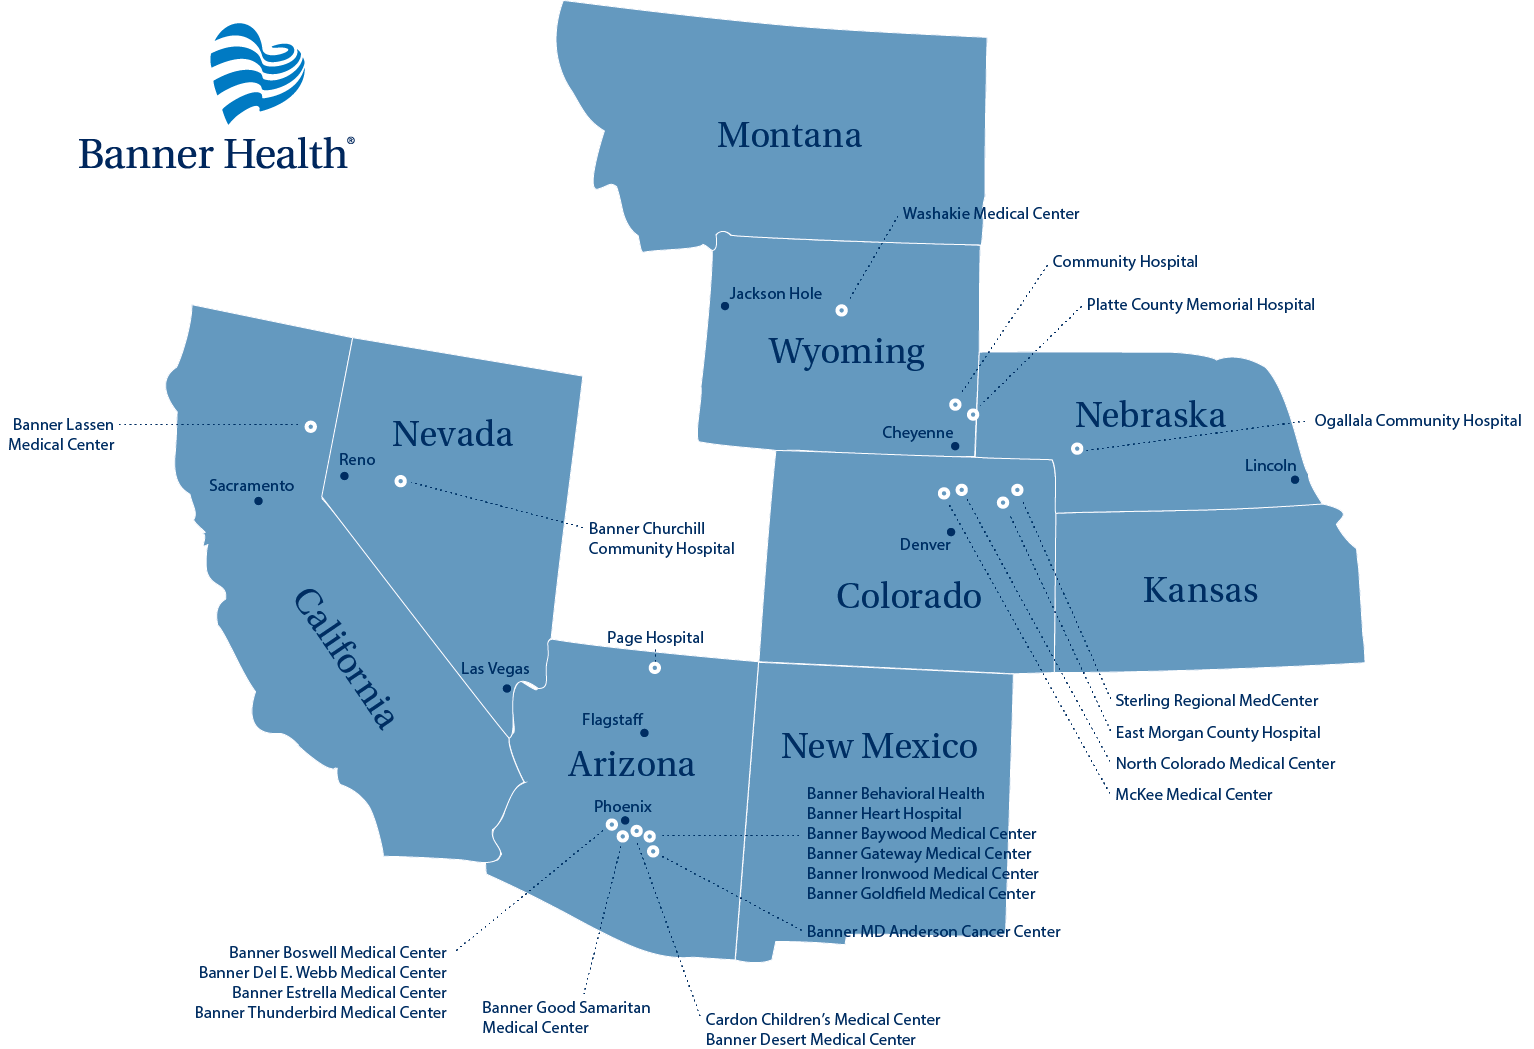 ALL_facility_map_wKSMTNM2.png 1,534×1,049 pixels County